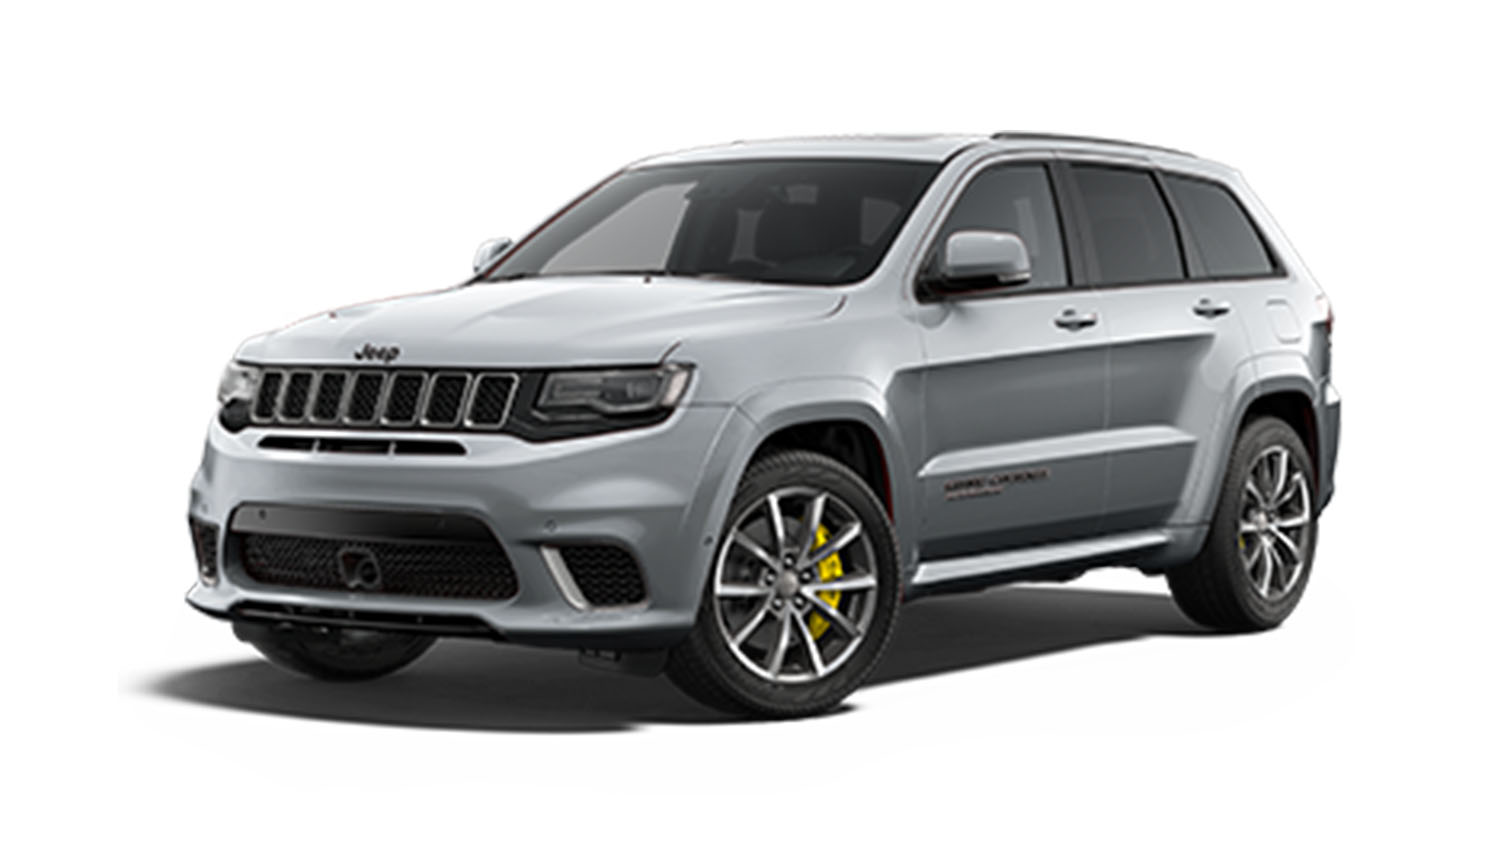 New Jeep Grand Cherokee 6 2 V8 HEMI Supercharged Trackhawk